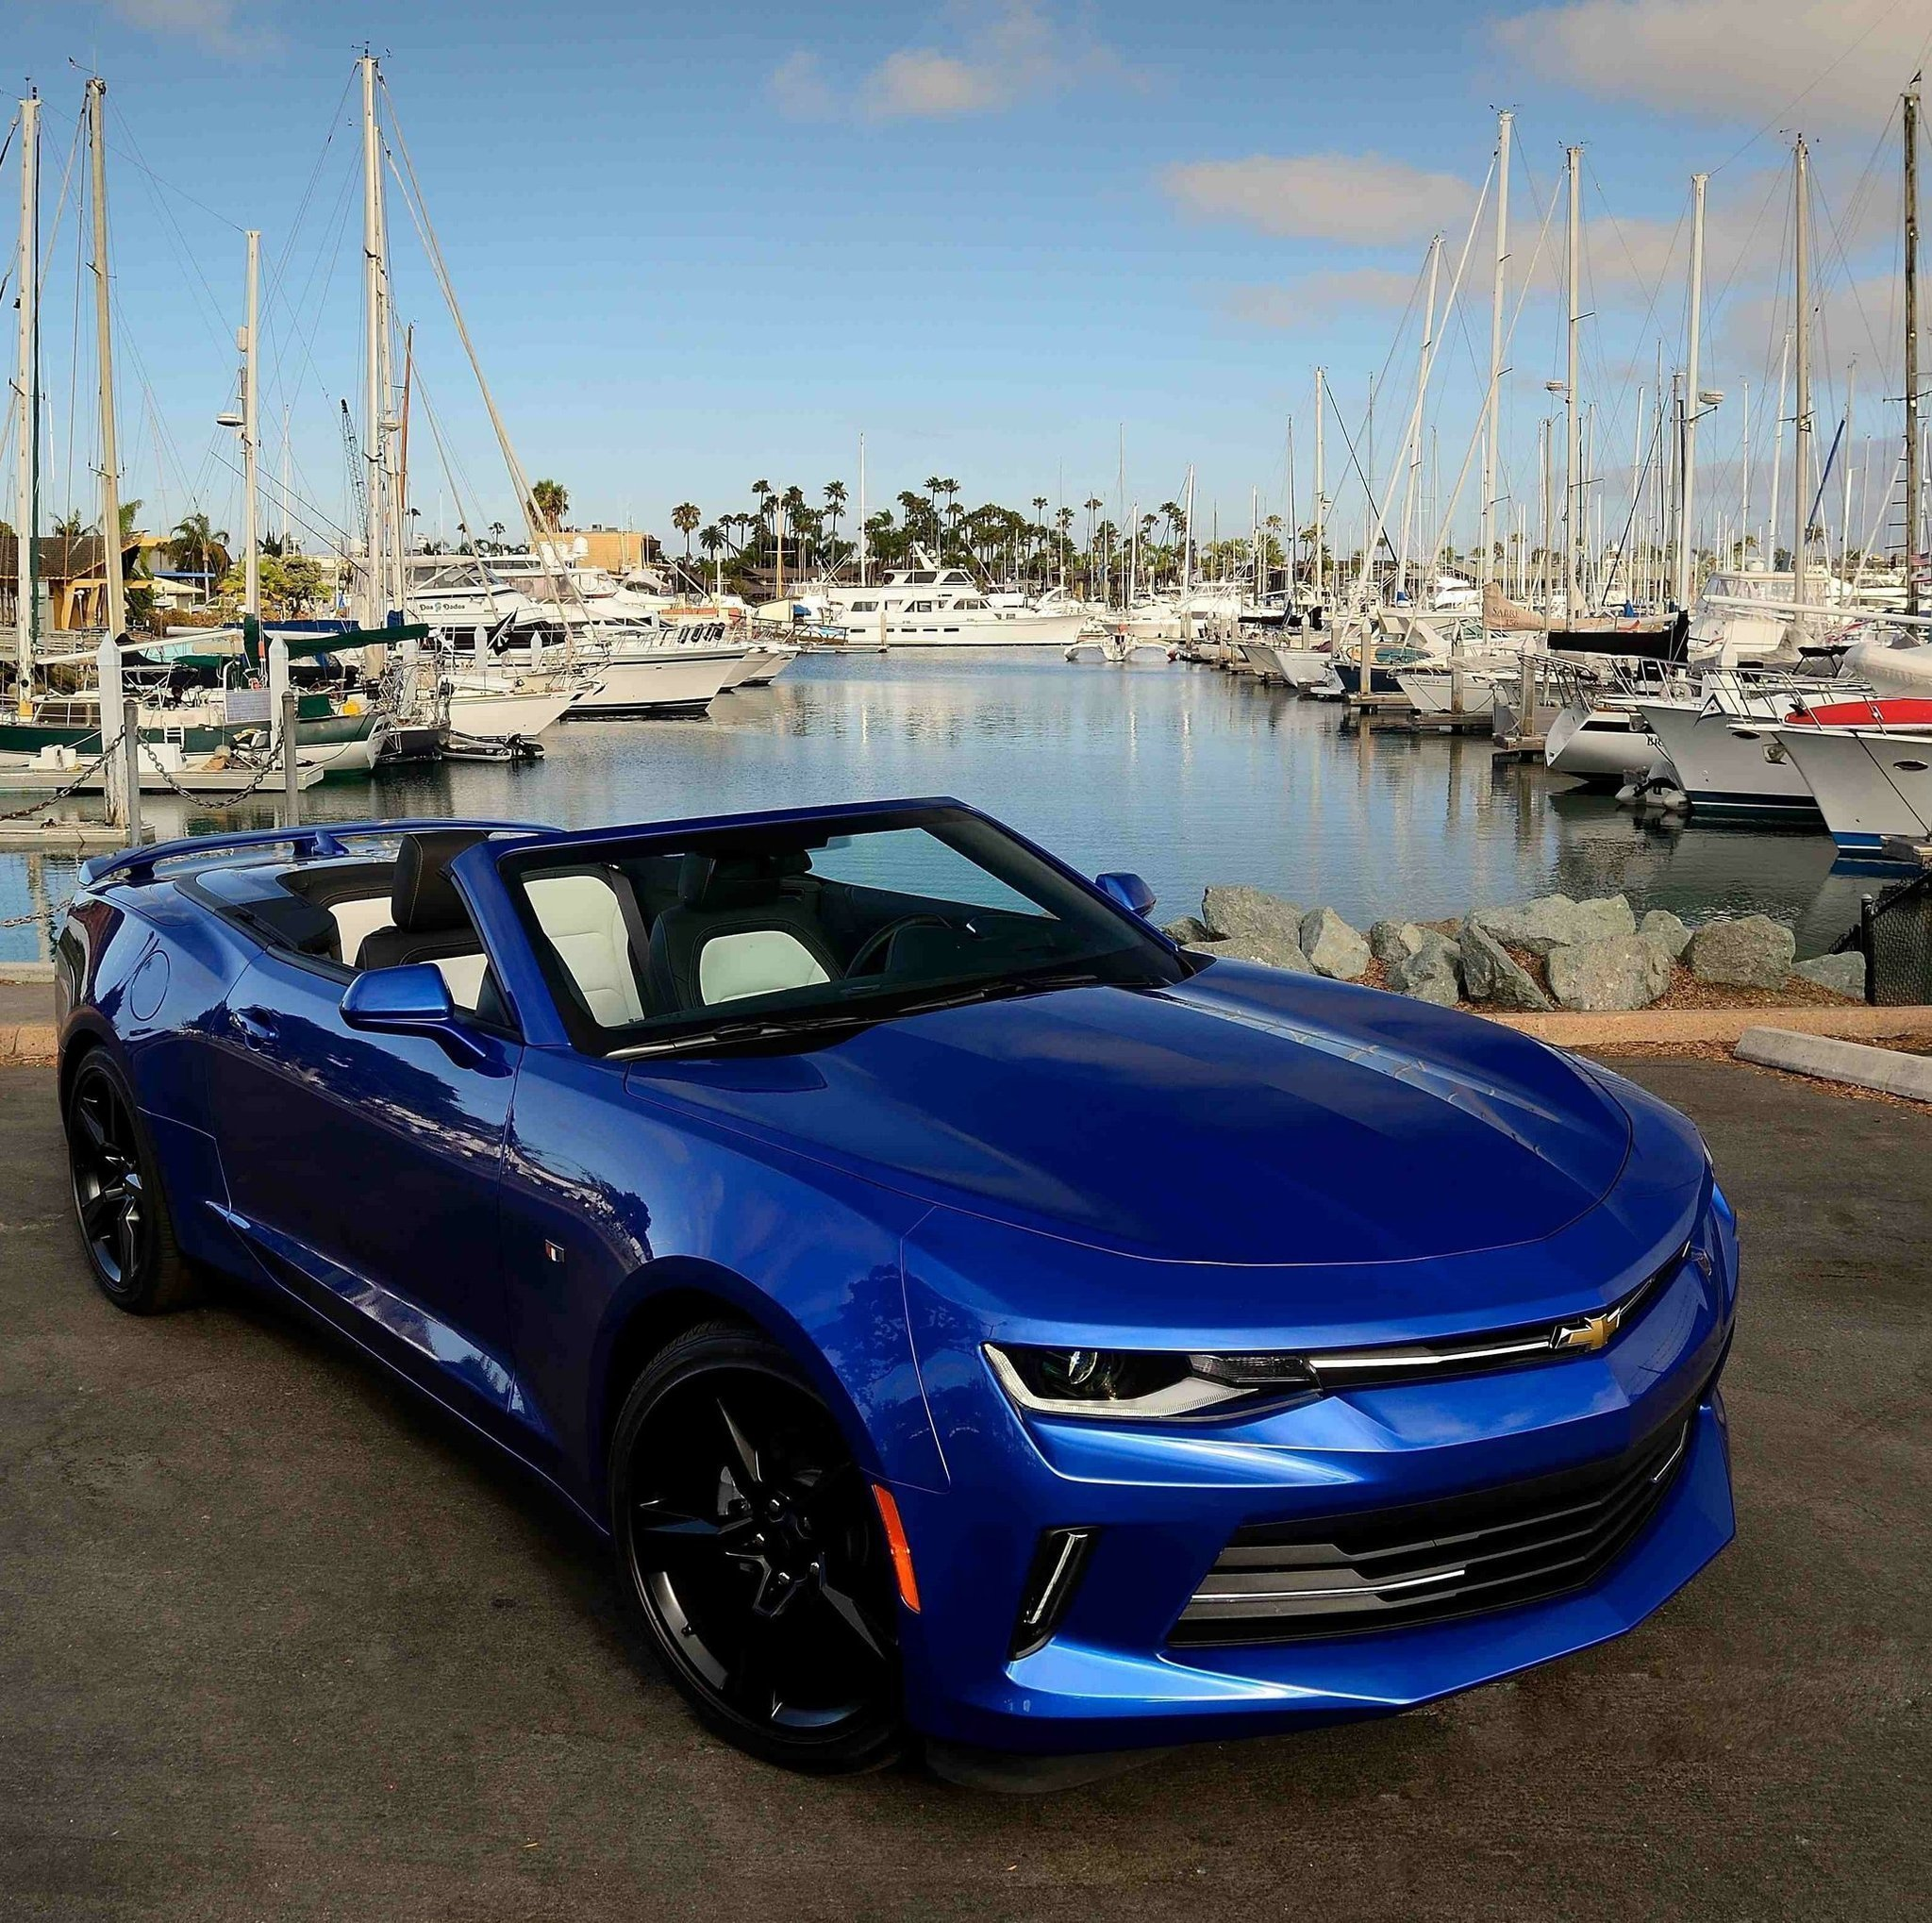 Worksheet. The 2016 Chevrolet Camaro convertible is a dramatic striptease